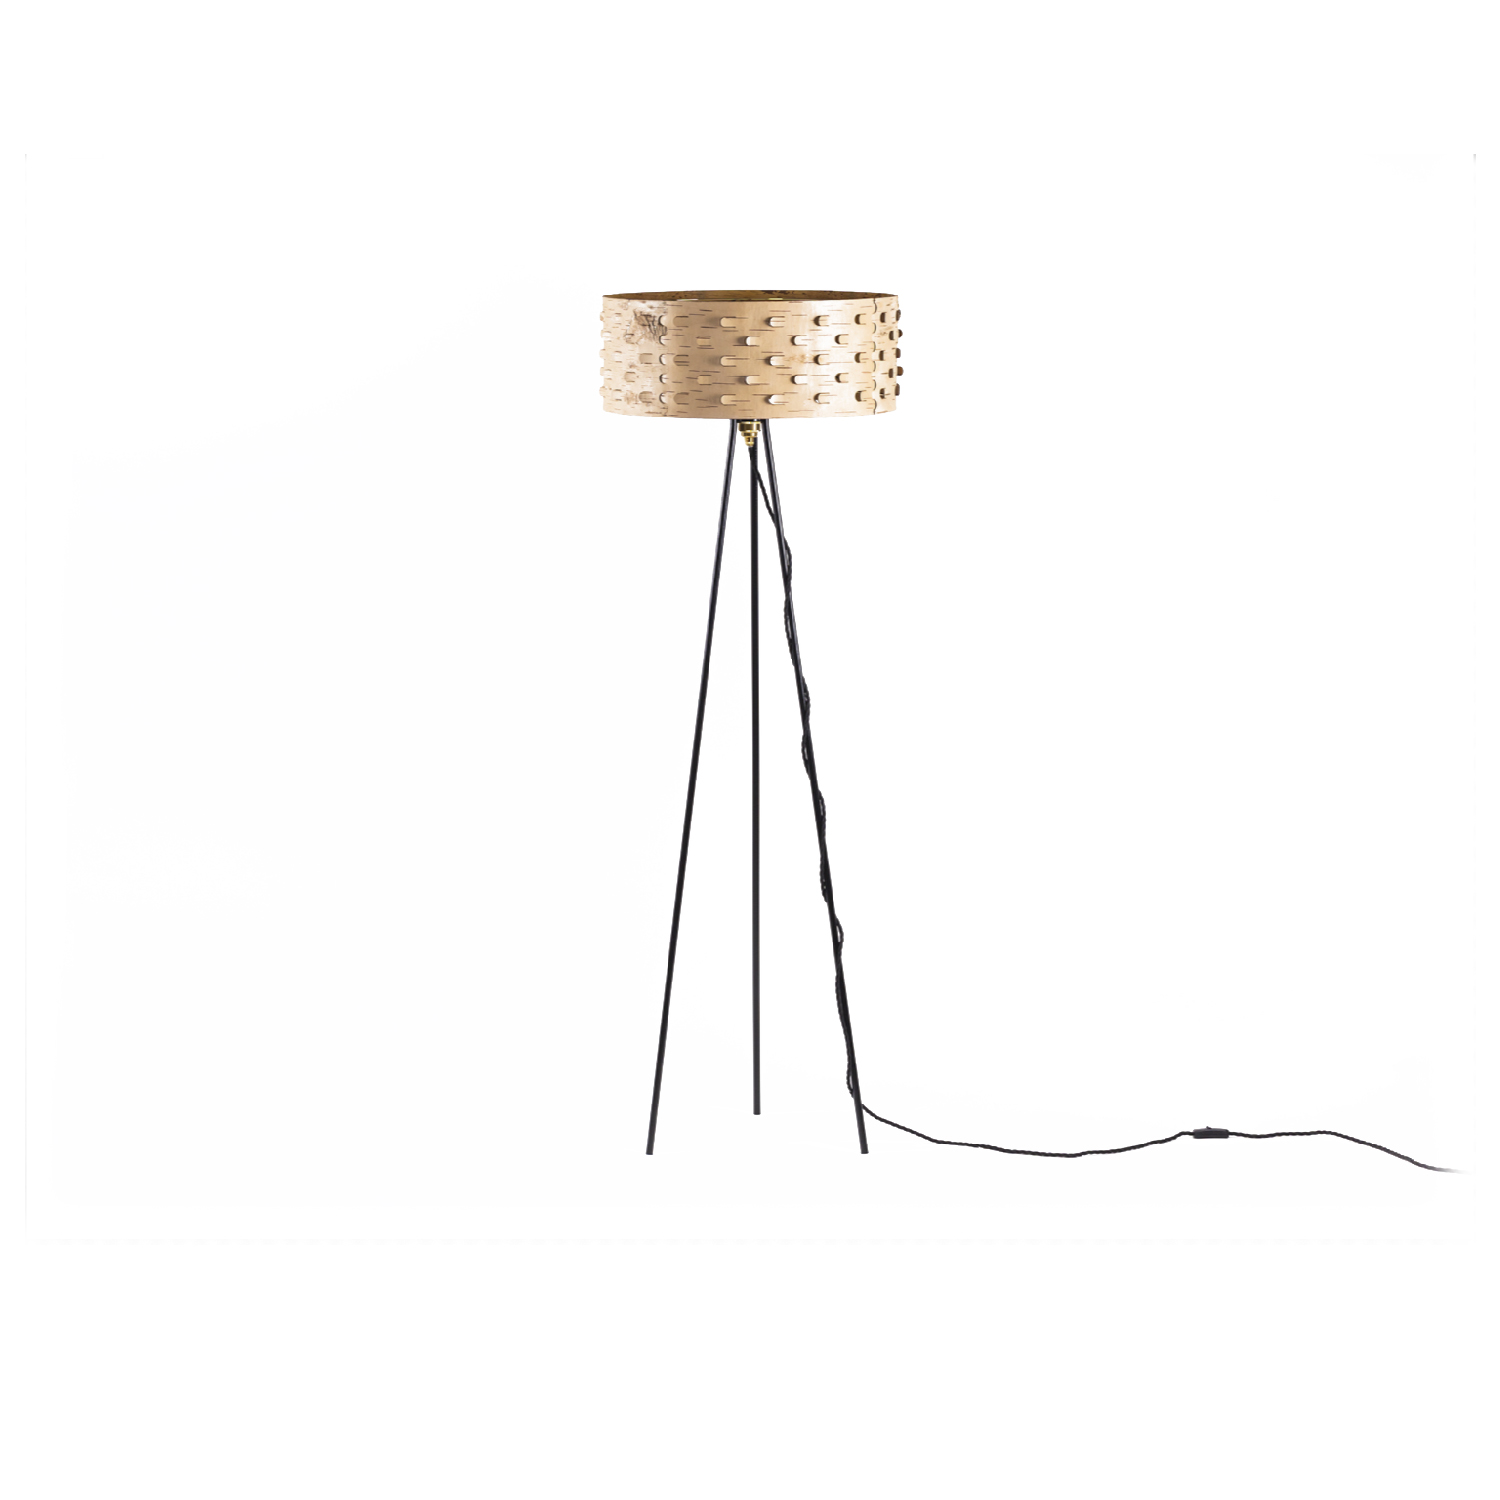 Svetoch SS50 Floor Lamp - A traditional glue-free plug technique is combined with a modern laser technique which allows the light to shine through the lampshade in a playful manner. Svetoch is great at setting the mood and ensuring a cosy and intimate ambience. The lamp comes in three sizes, each available both as a pendant and floor lamp.  Unlike in traditional craftsmanship, we make our products from the naturally velvety back of the birch bark. We deliberately chose the lighter inner layers of the bark to celebrate the graphic grain and colouring of each piece. Every object is thus one of a kind, representing a unique product of nature, which is emphasised by contrasting colour accents. High quality is ensured by elaborate craftsmanship and careful material selection. | Matter of Stuff